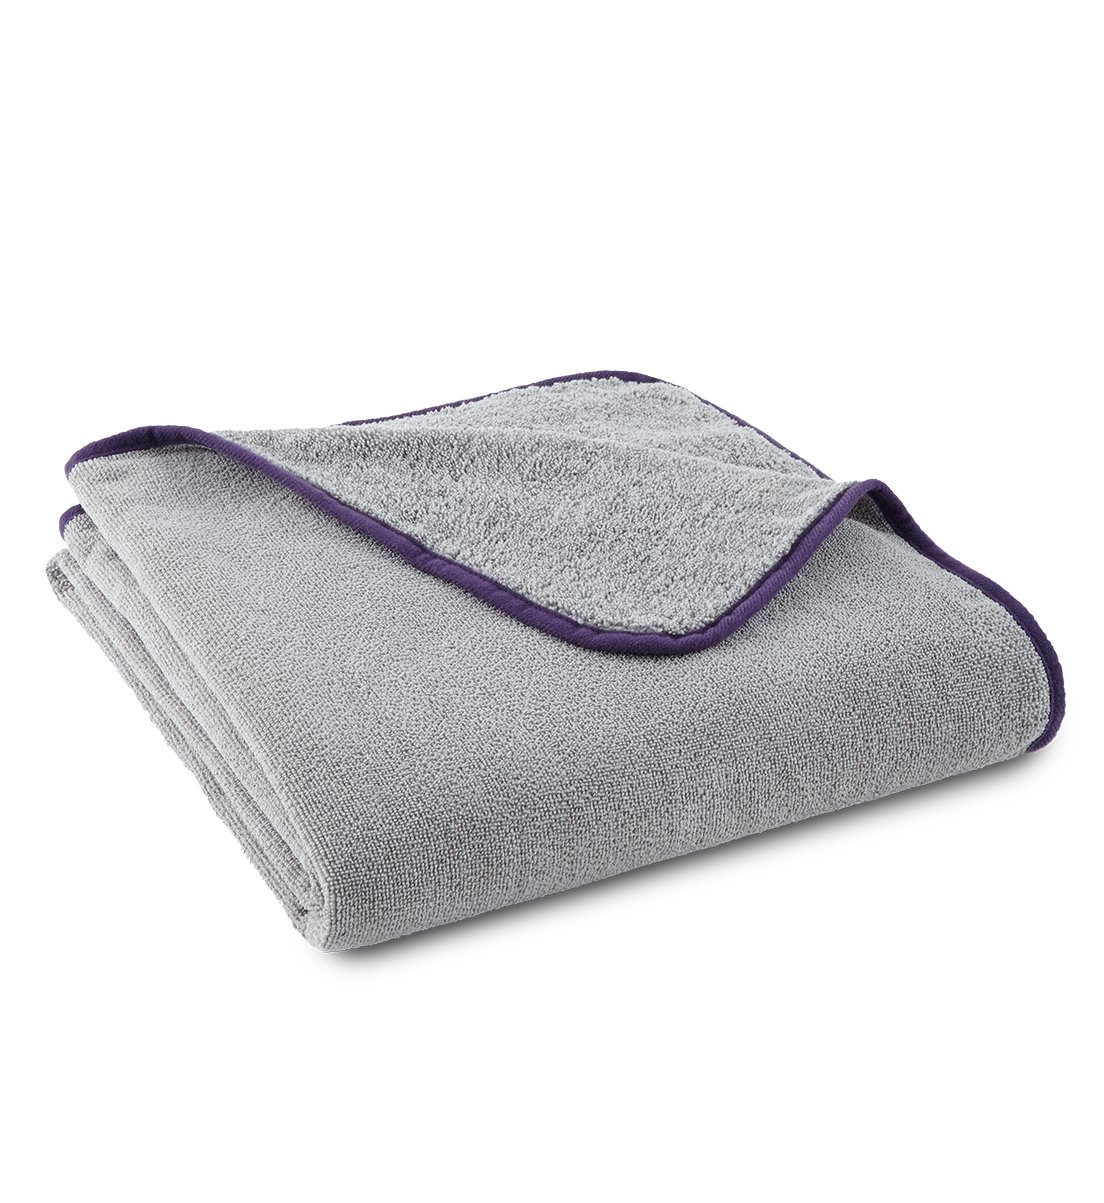 Limited Edition Ultra-Plush Bath Towel, graphite/purple